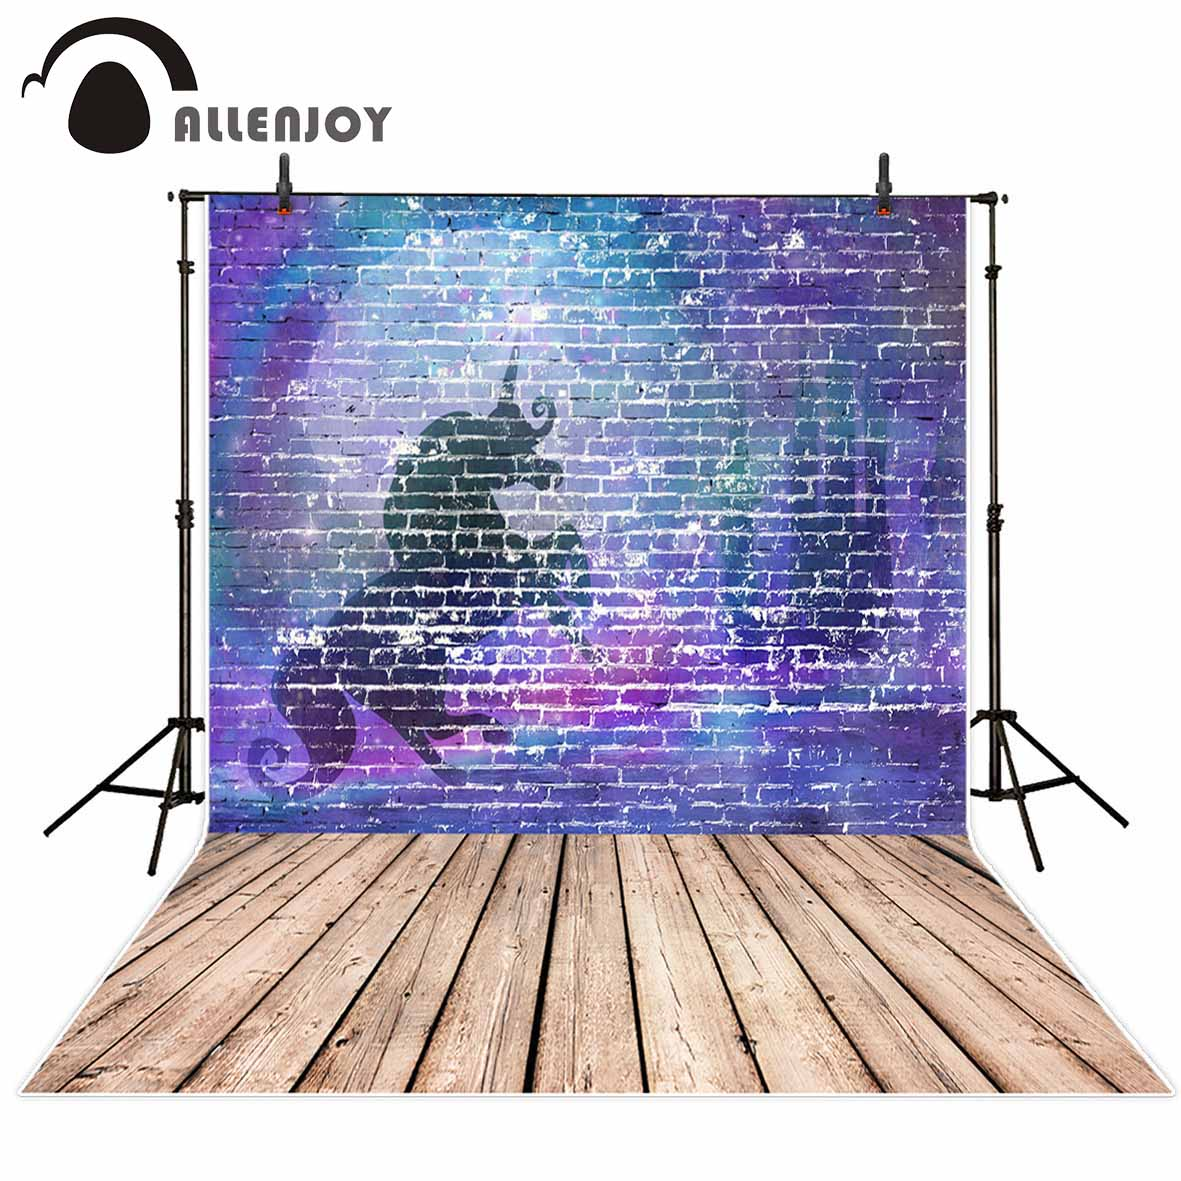 Allenjoy photography background blue purple unicorn brick wall wooden floor background photo studio camera fotografica allenjoy photography backdrops neat wooden structure wooden wall wood brick wall backgrounds for photo studio